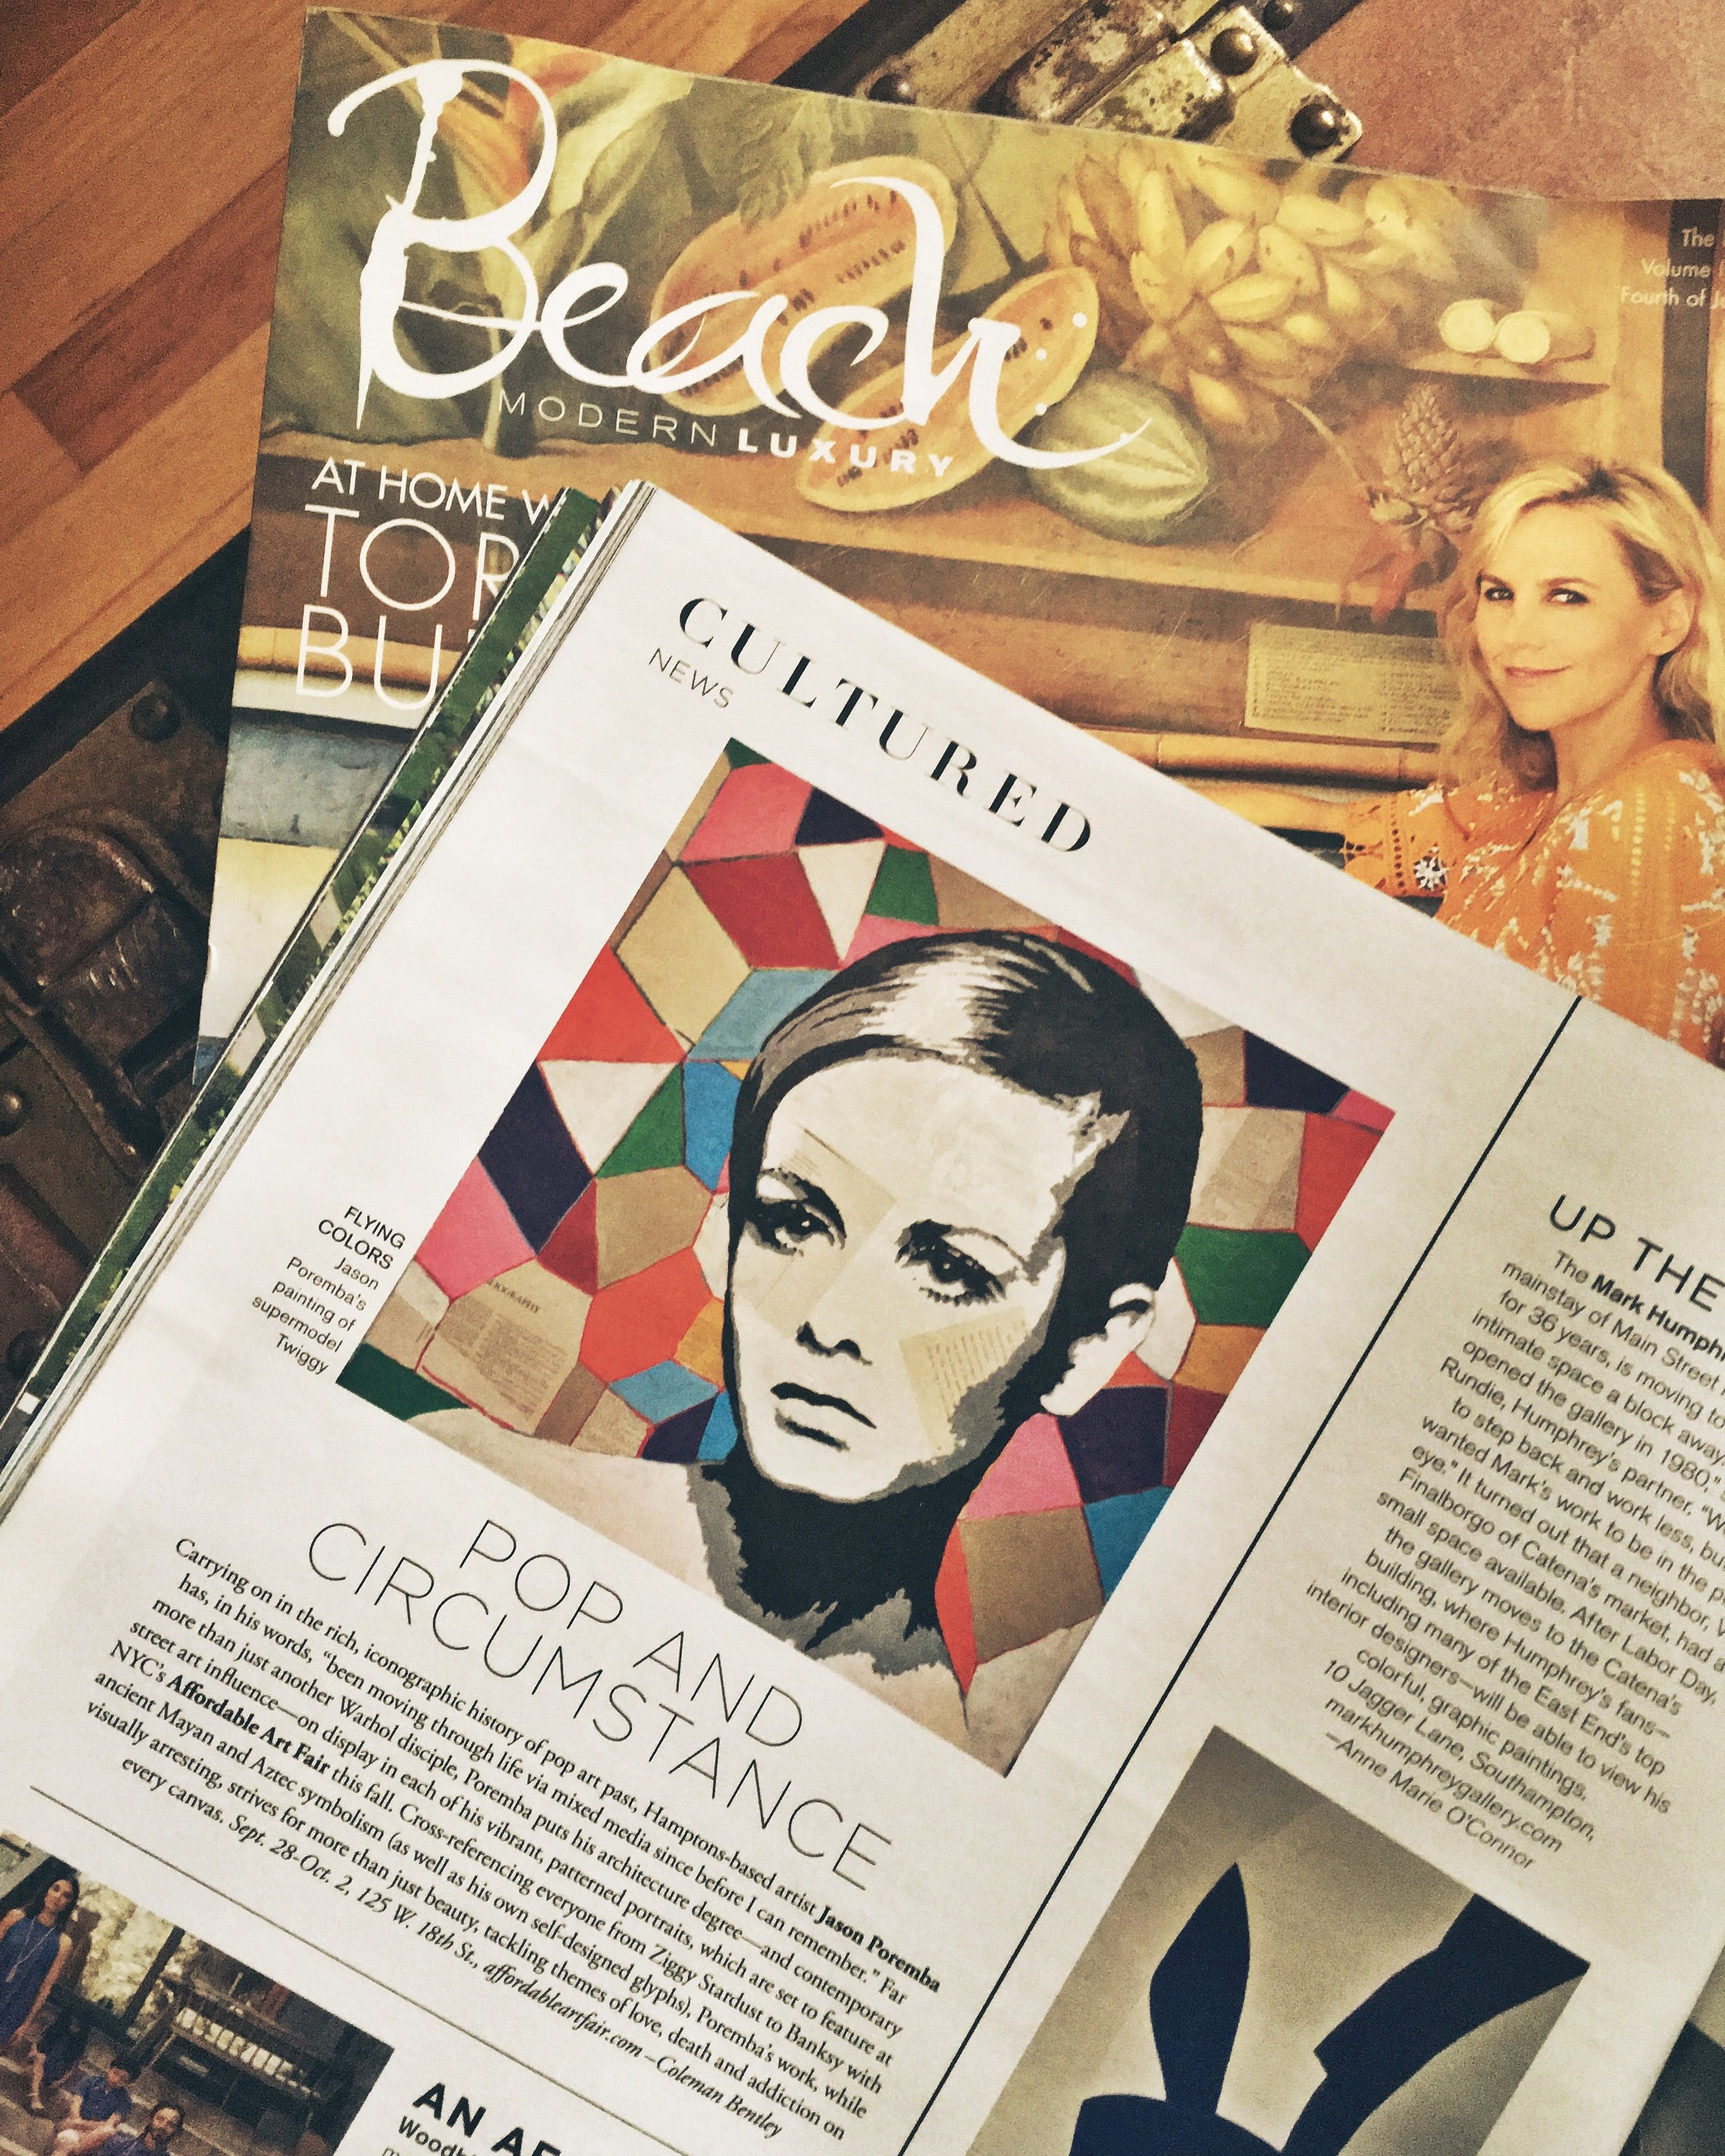 A big thanks to Beach Magazine for featuring me in their latest issue. Go pick up a copy and find me on page 52!